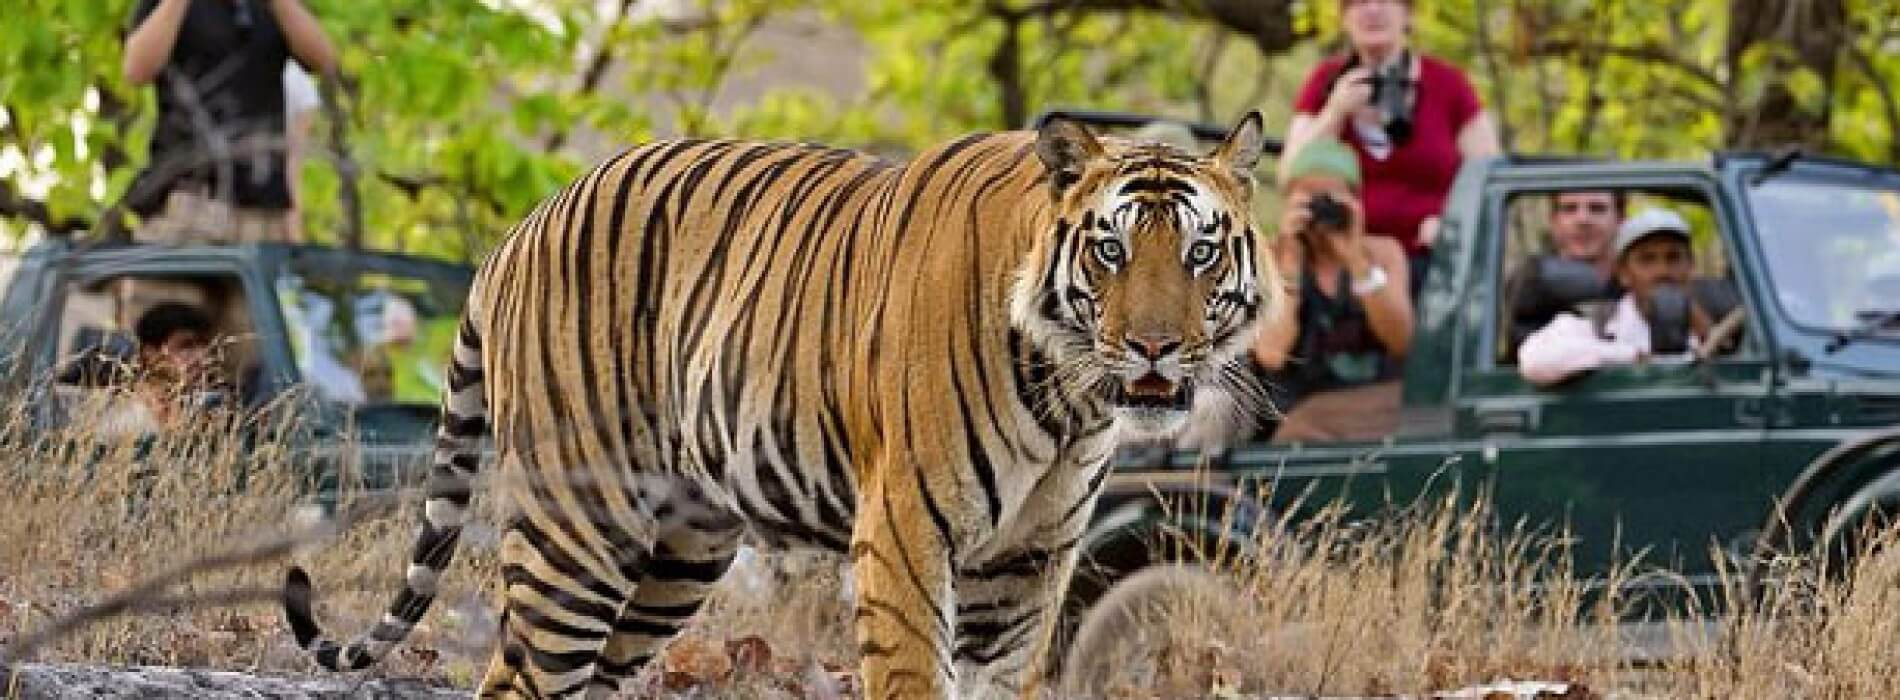 http://comedymood.com/top-10-wildlife-sanctuaries-of-india